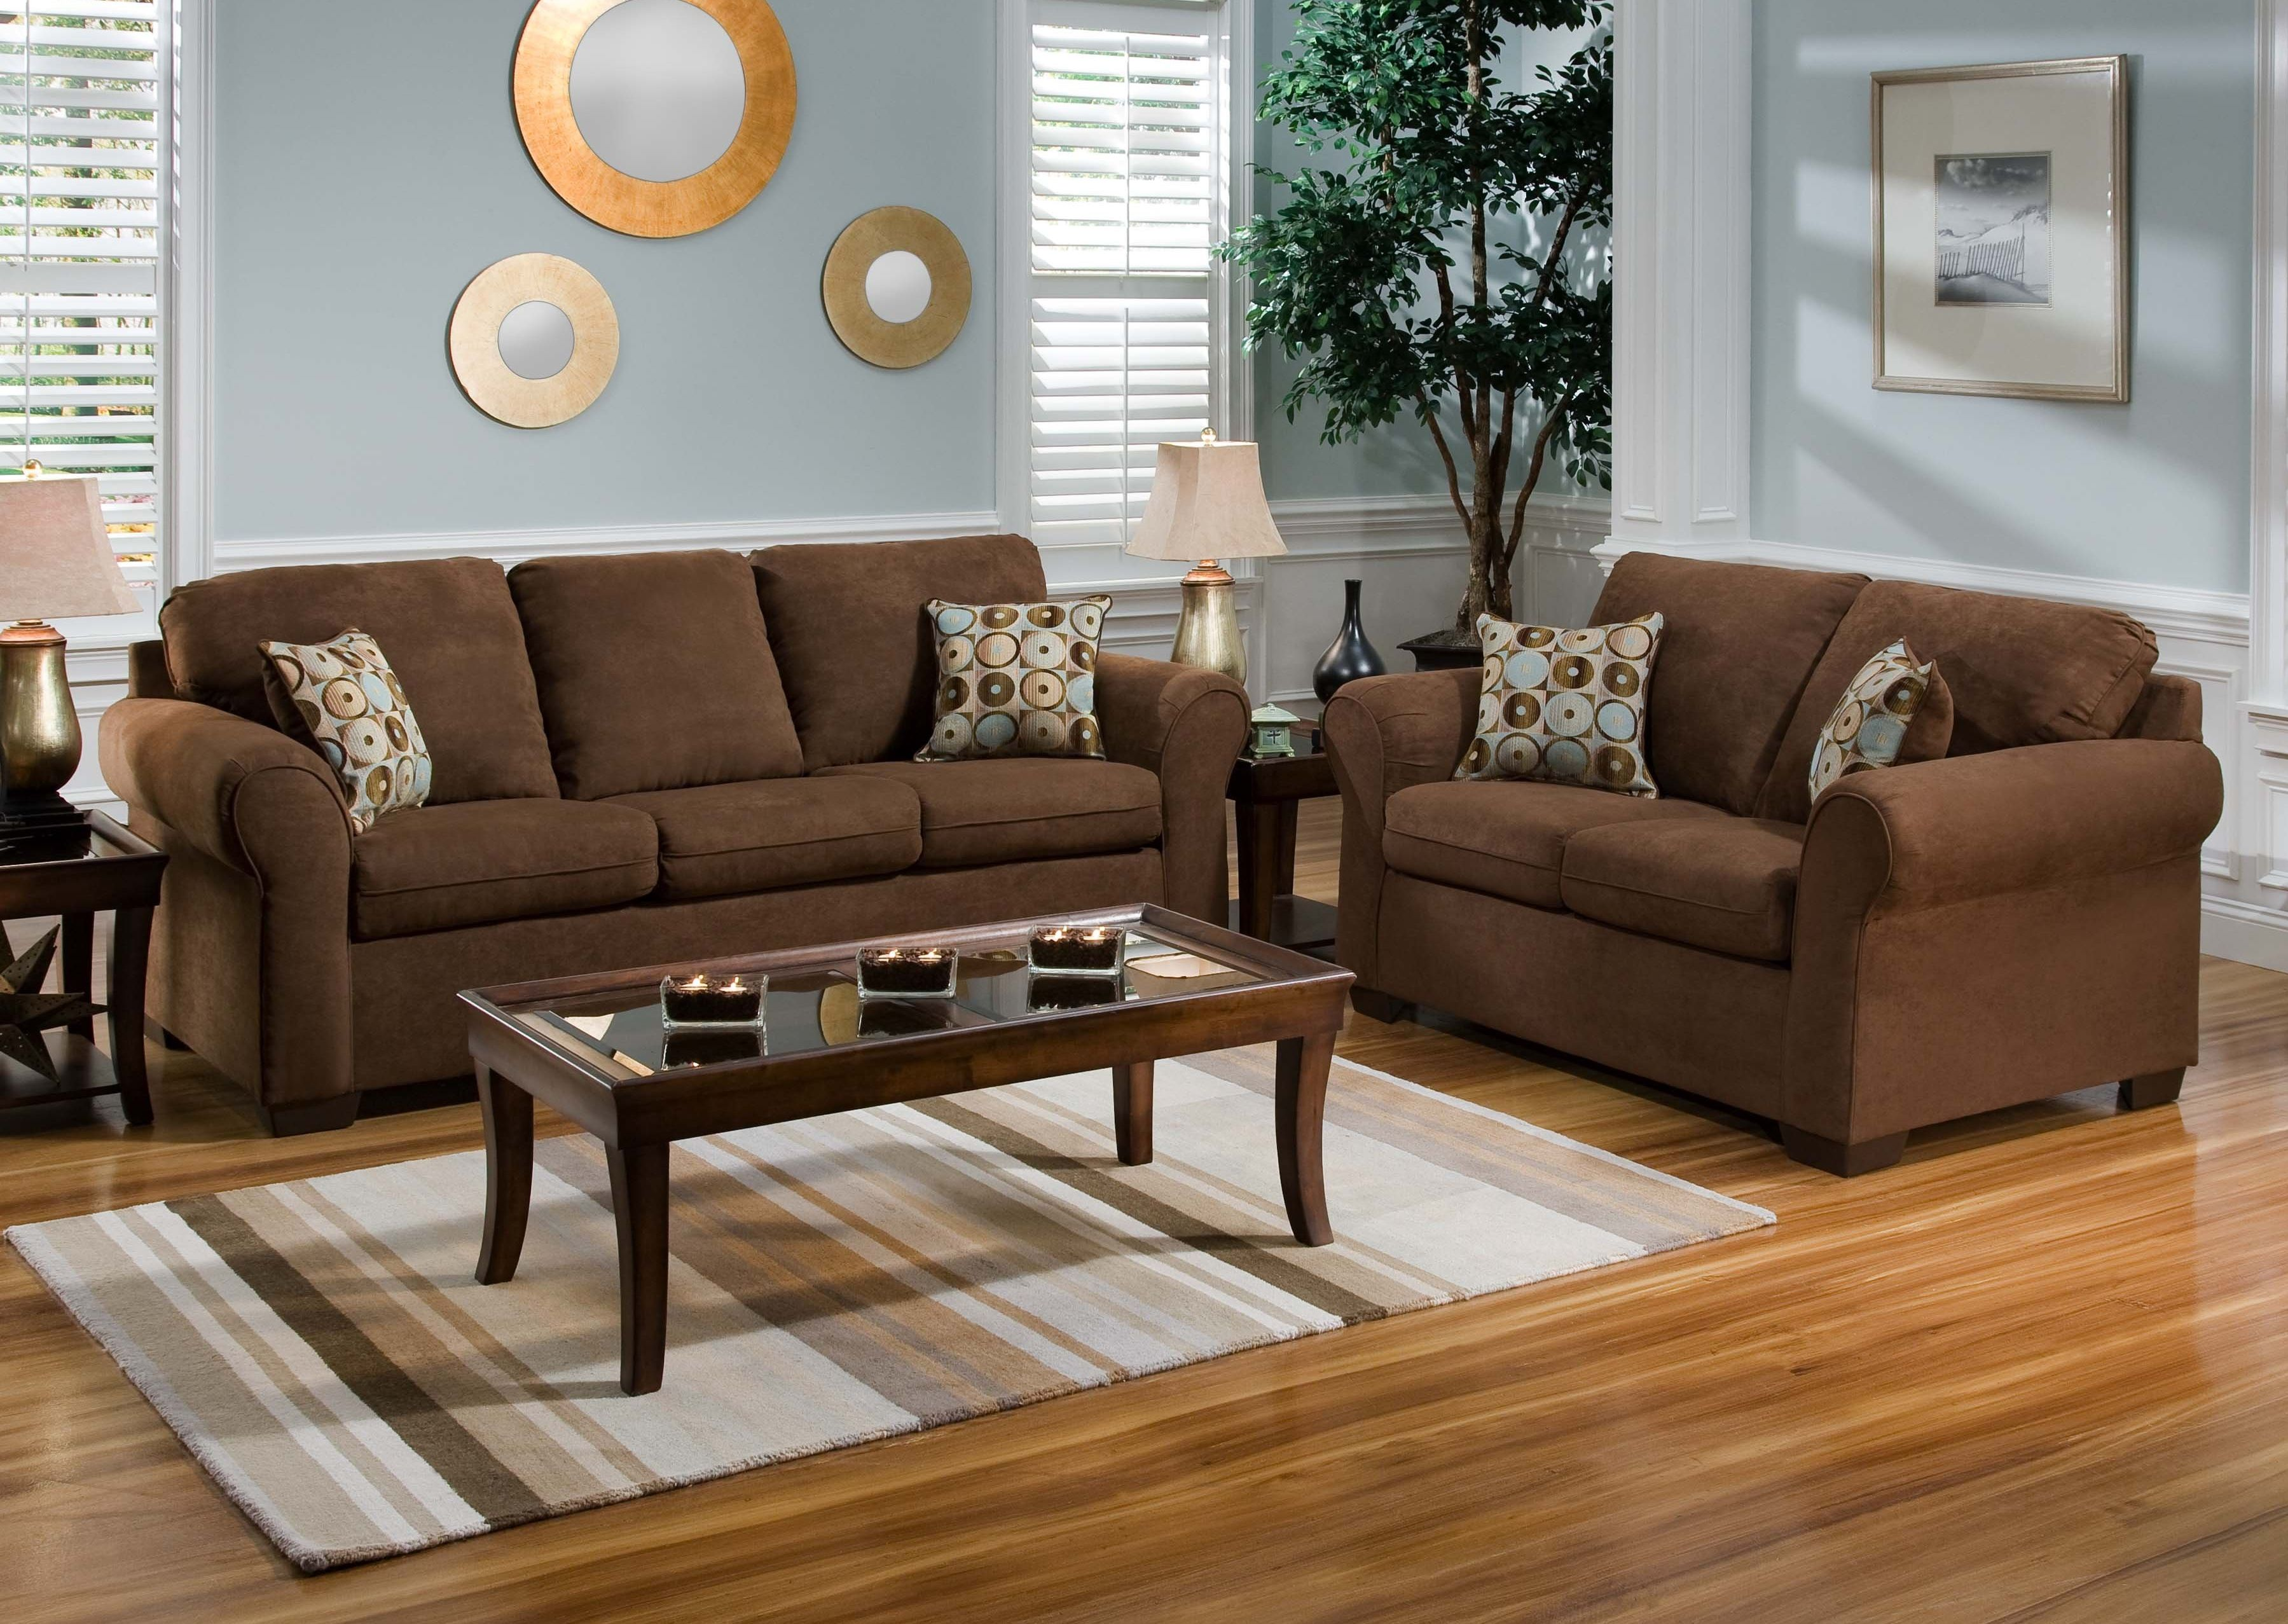 Wood flooring color to complement brown leather and oak What color compliments brown furniture